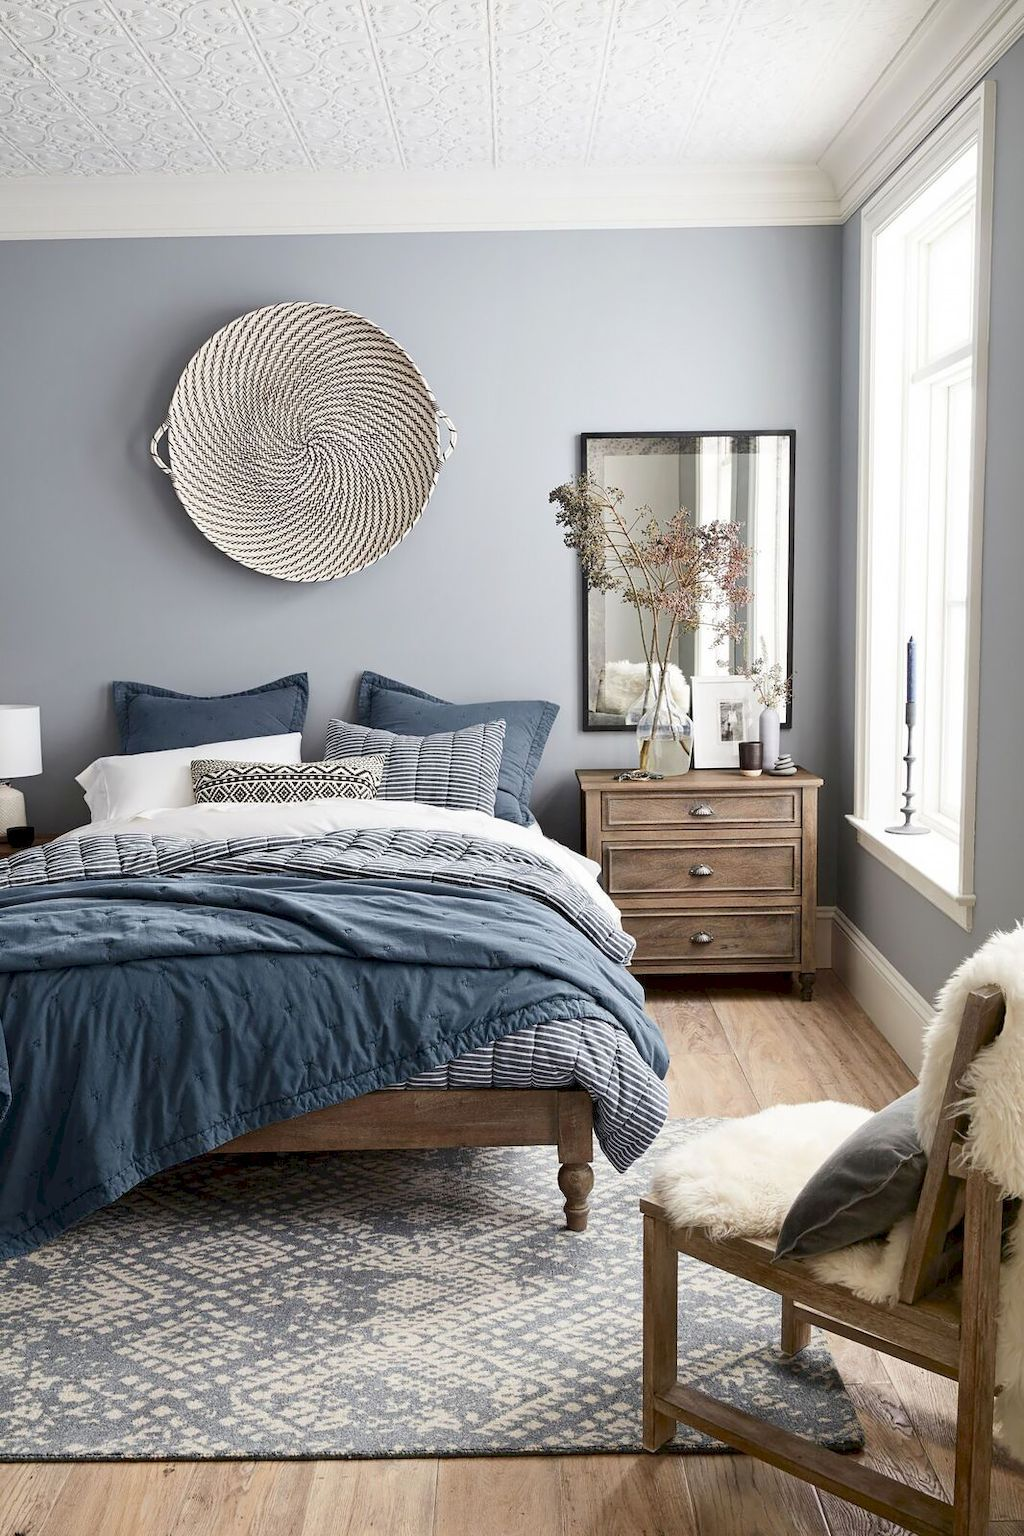 Gorgeous 50 Inspiring Bedroom Design Ideas with